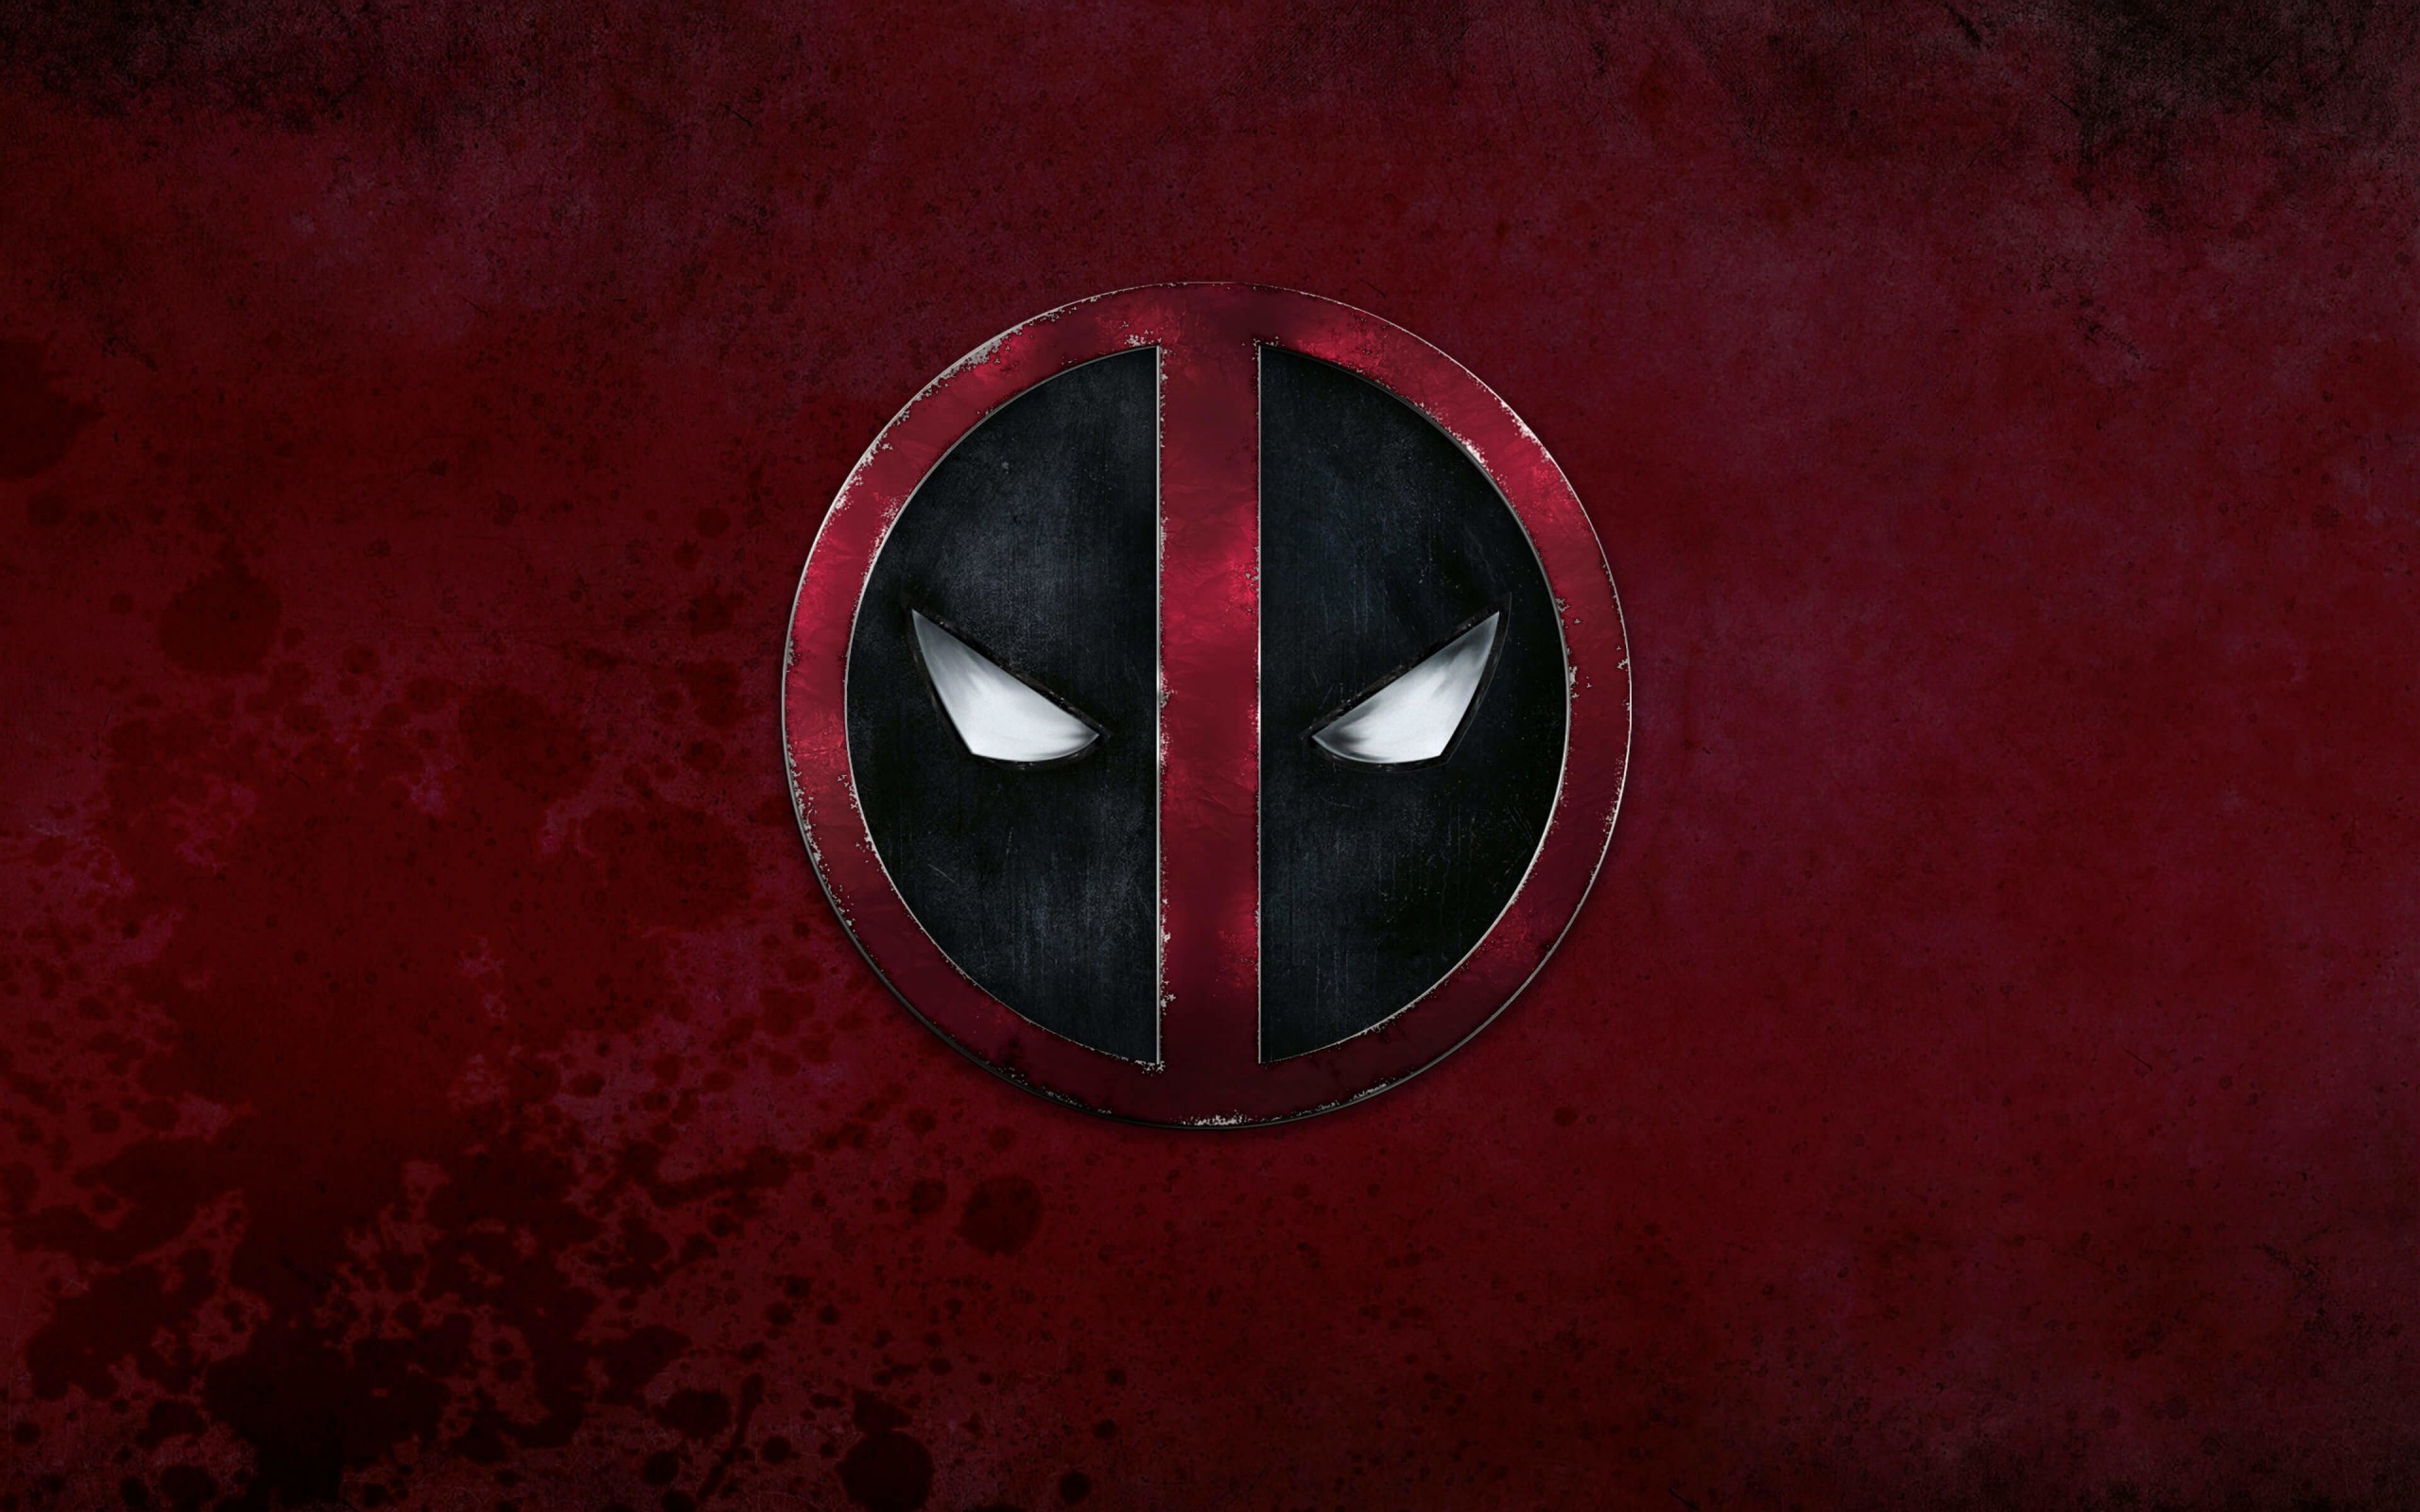 Deadpool Logo Wallpaper for Desktop 2560x1600